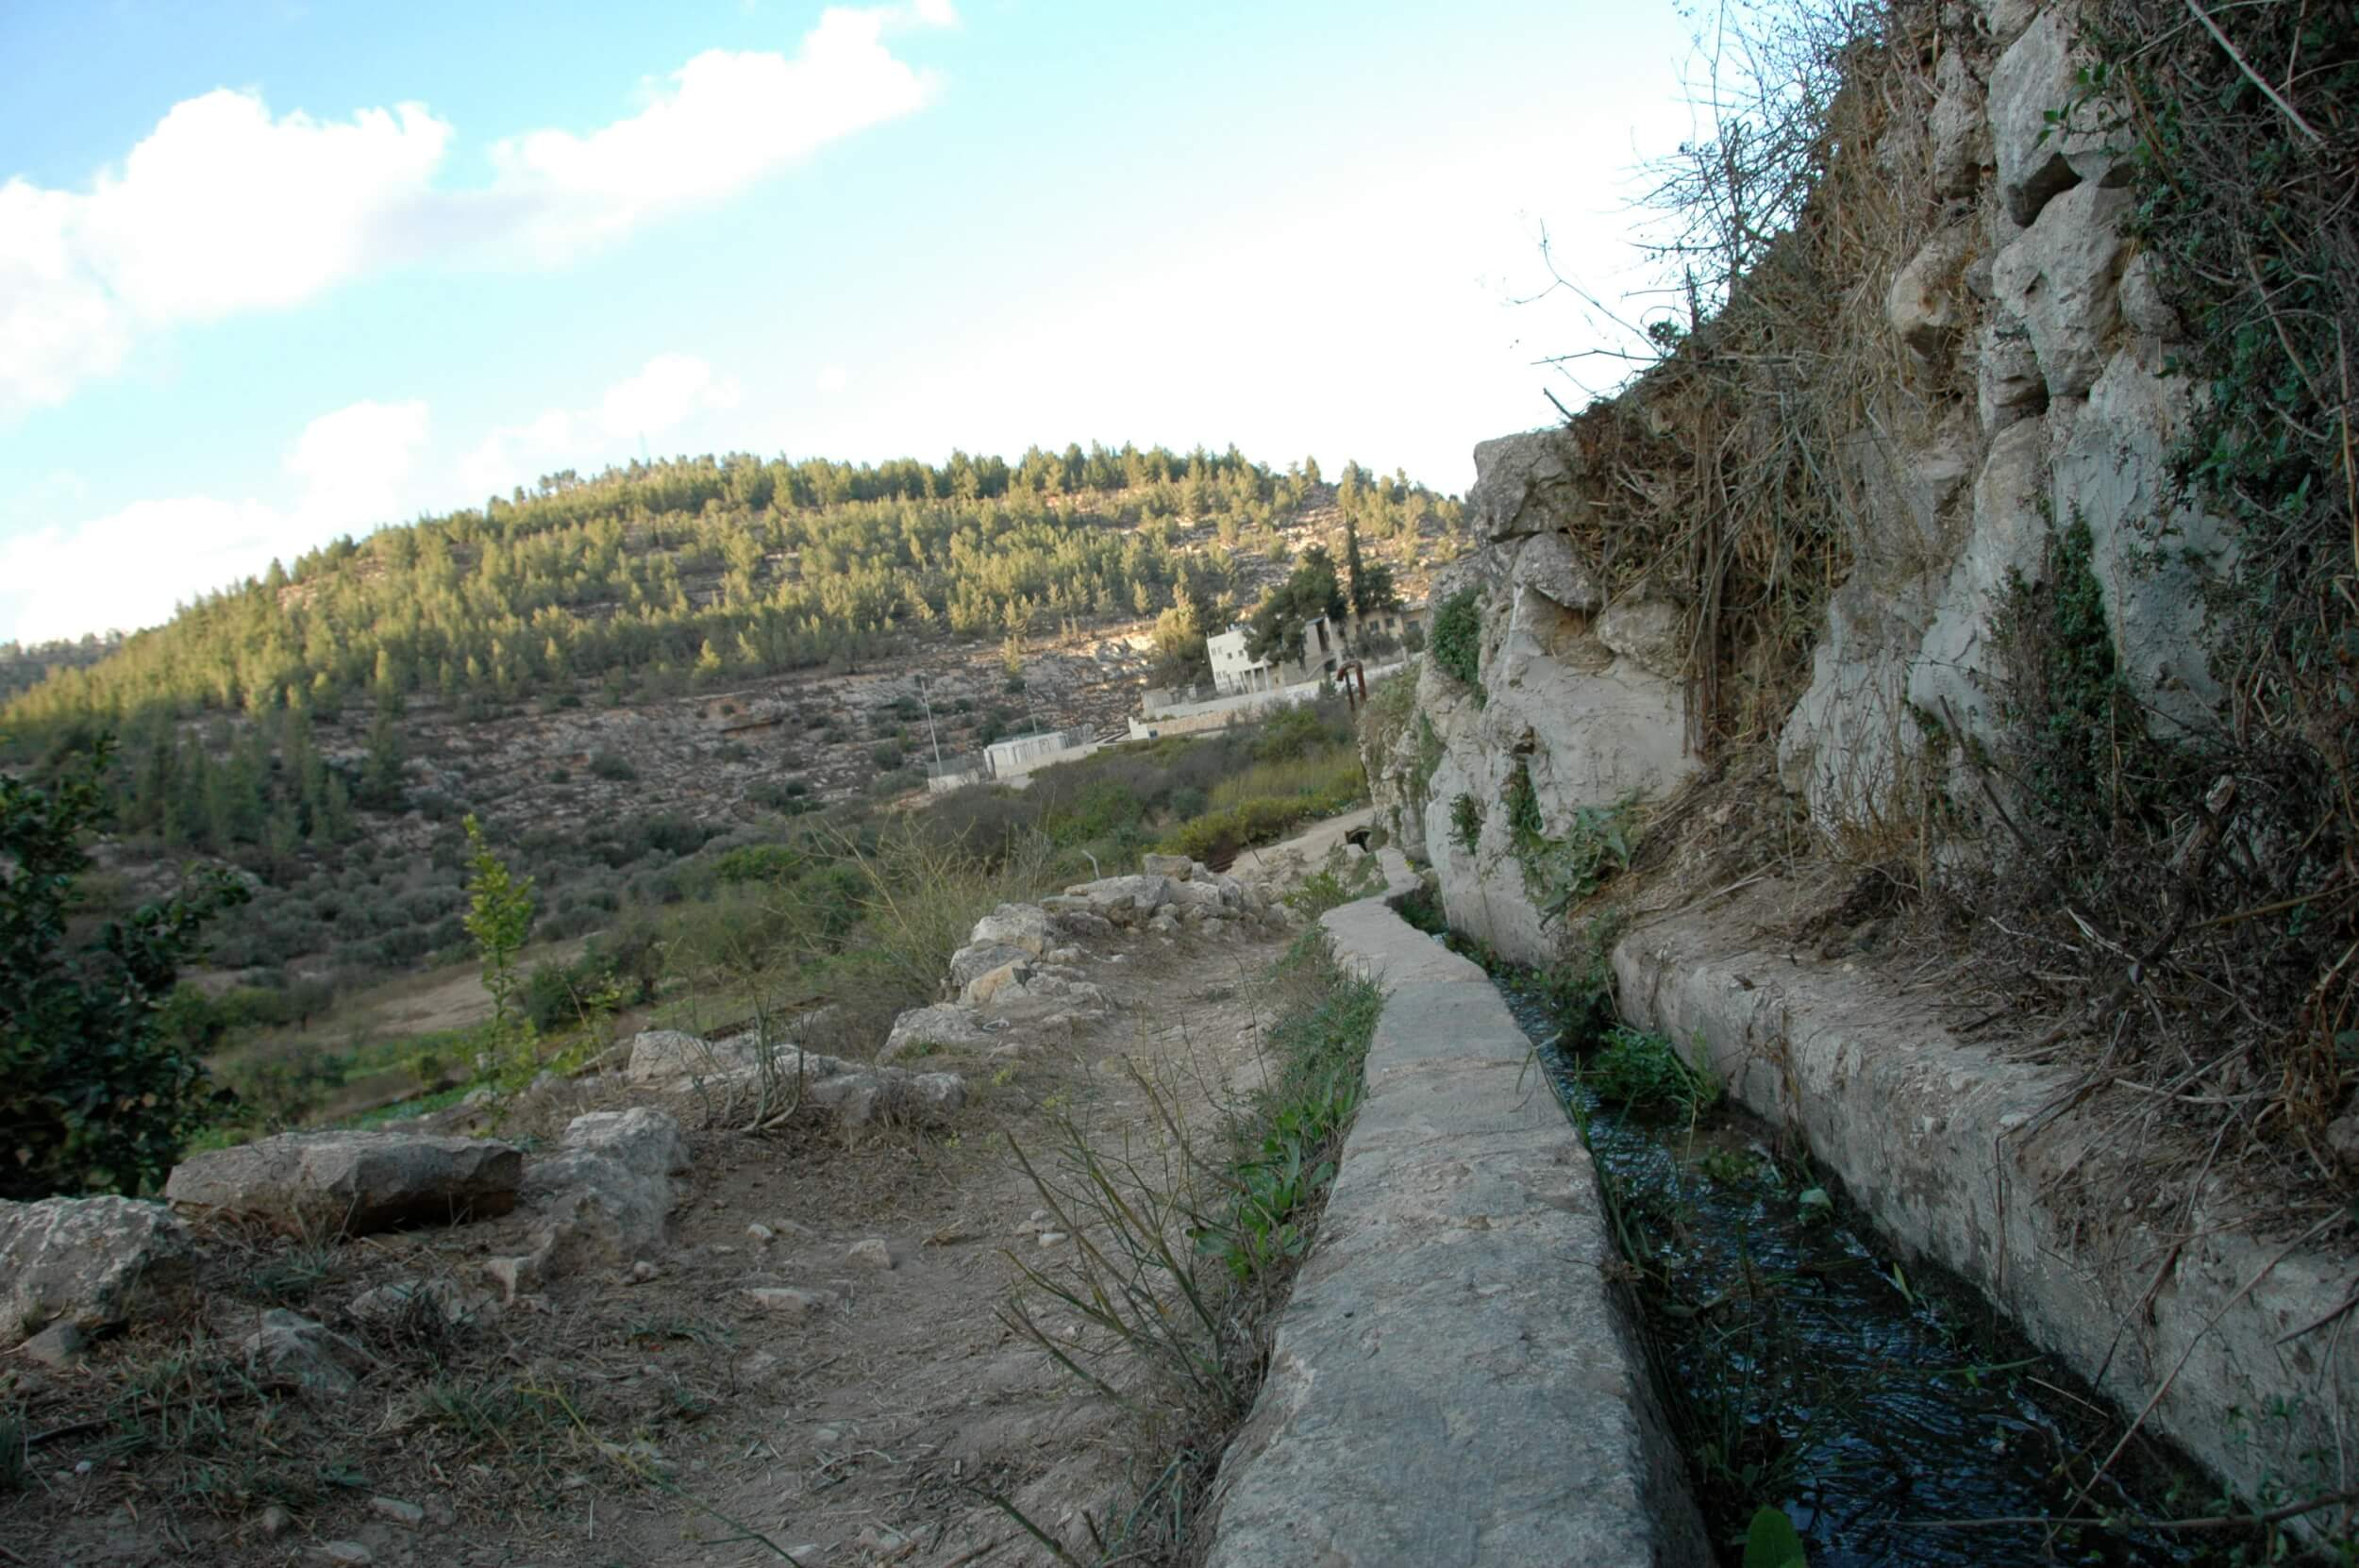 A view of the irrigation channels flowing down one side of Battir to the valley. (Photo: Sarah Levy)